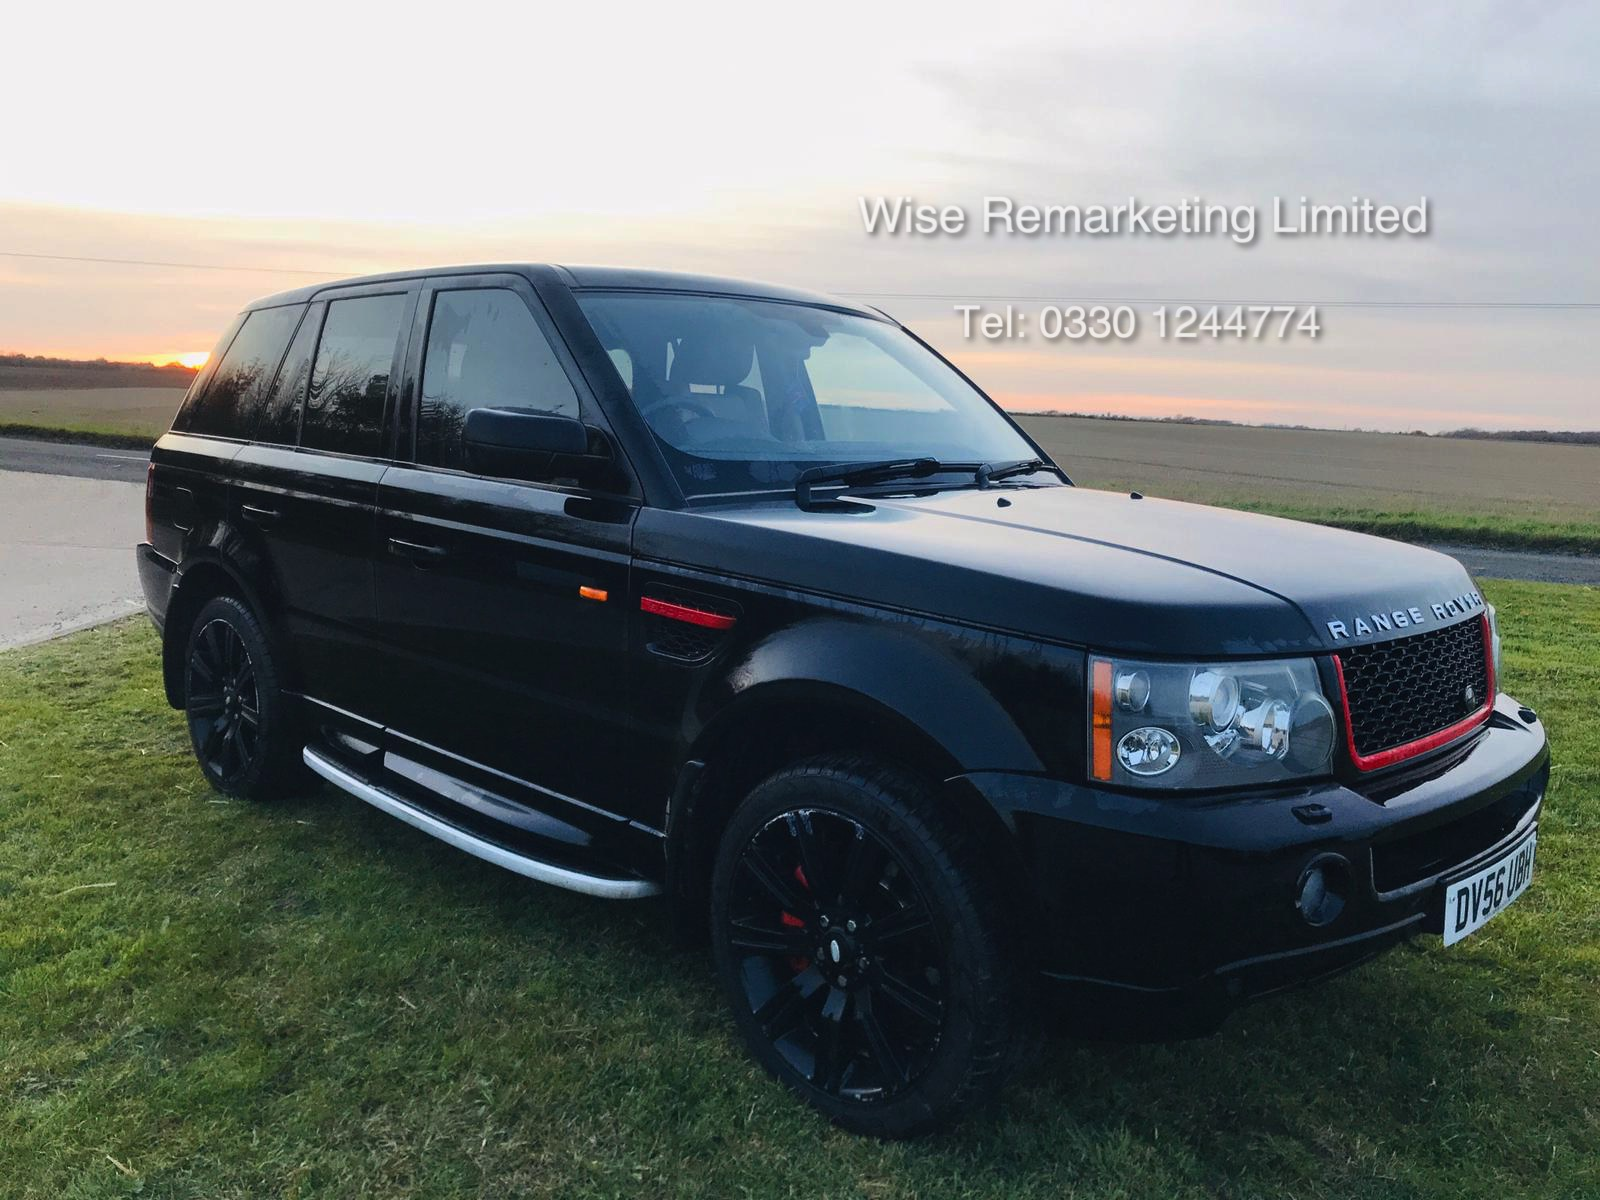 Lot 8a - (Reserve Met) Range Rover Sport 2.7 TDV6 HSE Auto - 2007 Model - Full Leather - TV Screens - Sat Nav